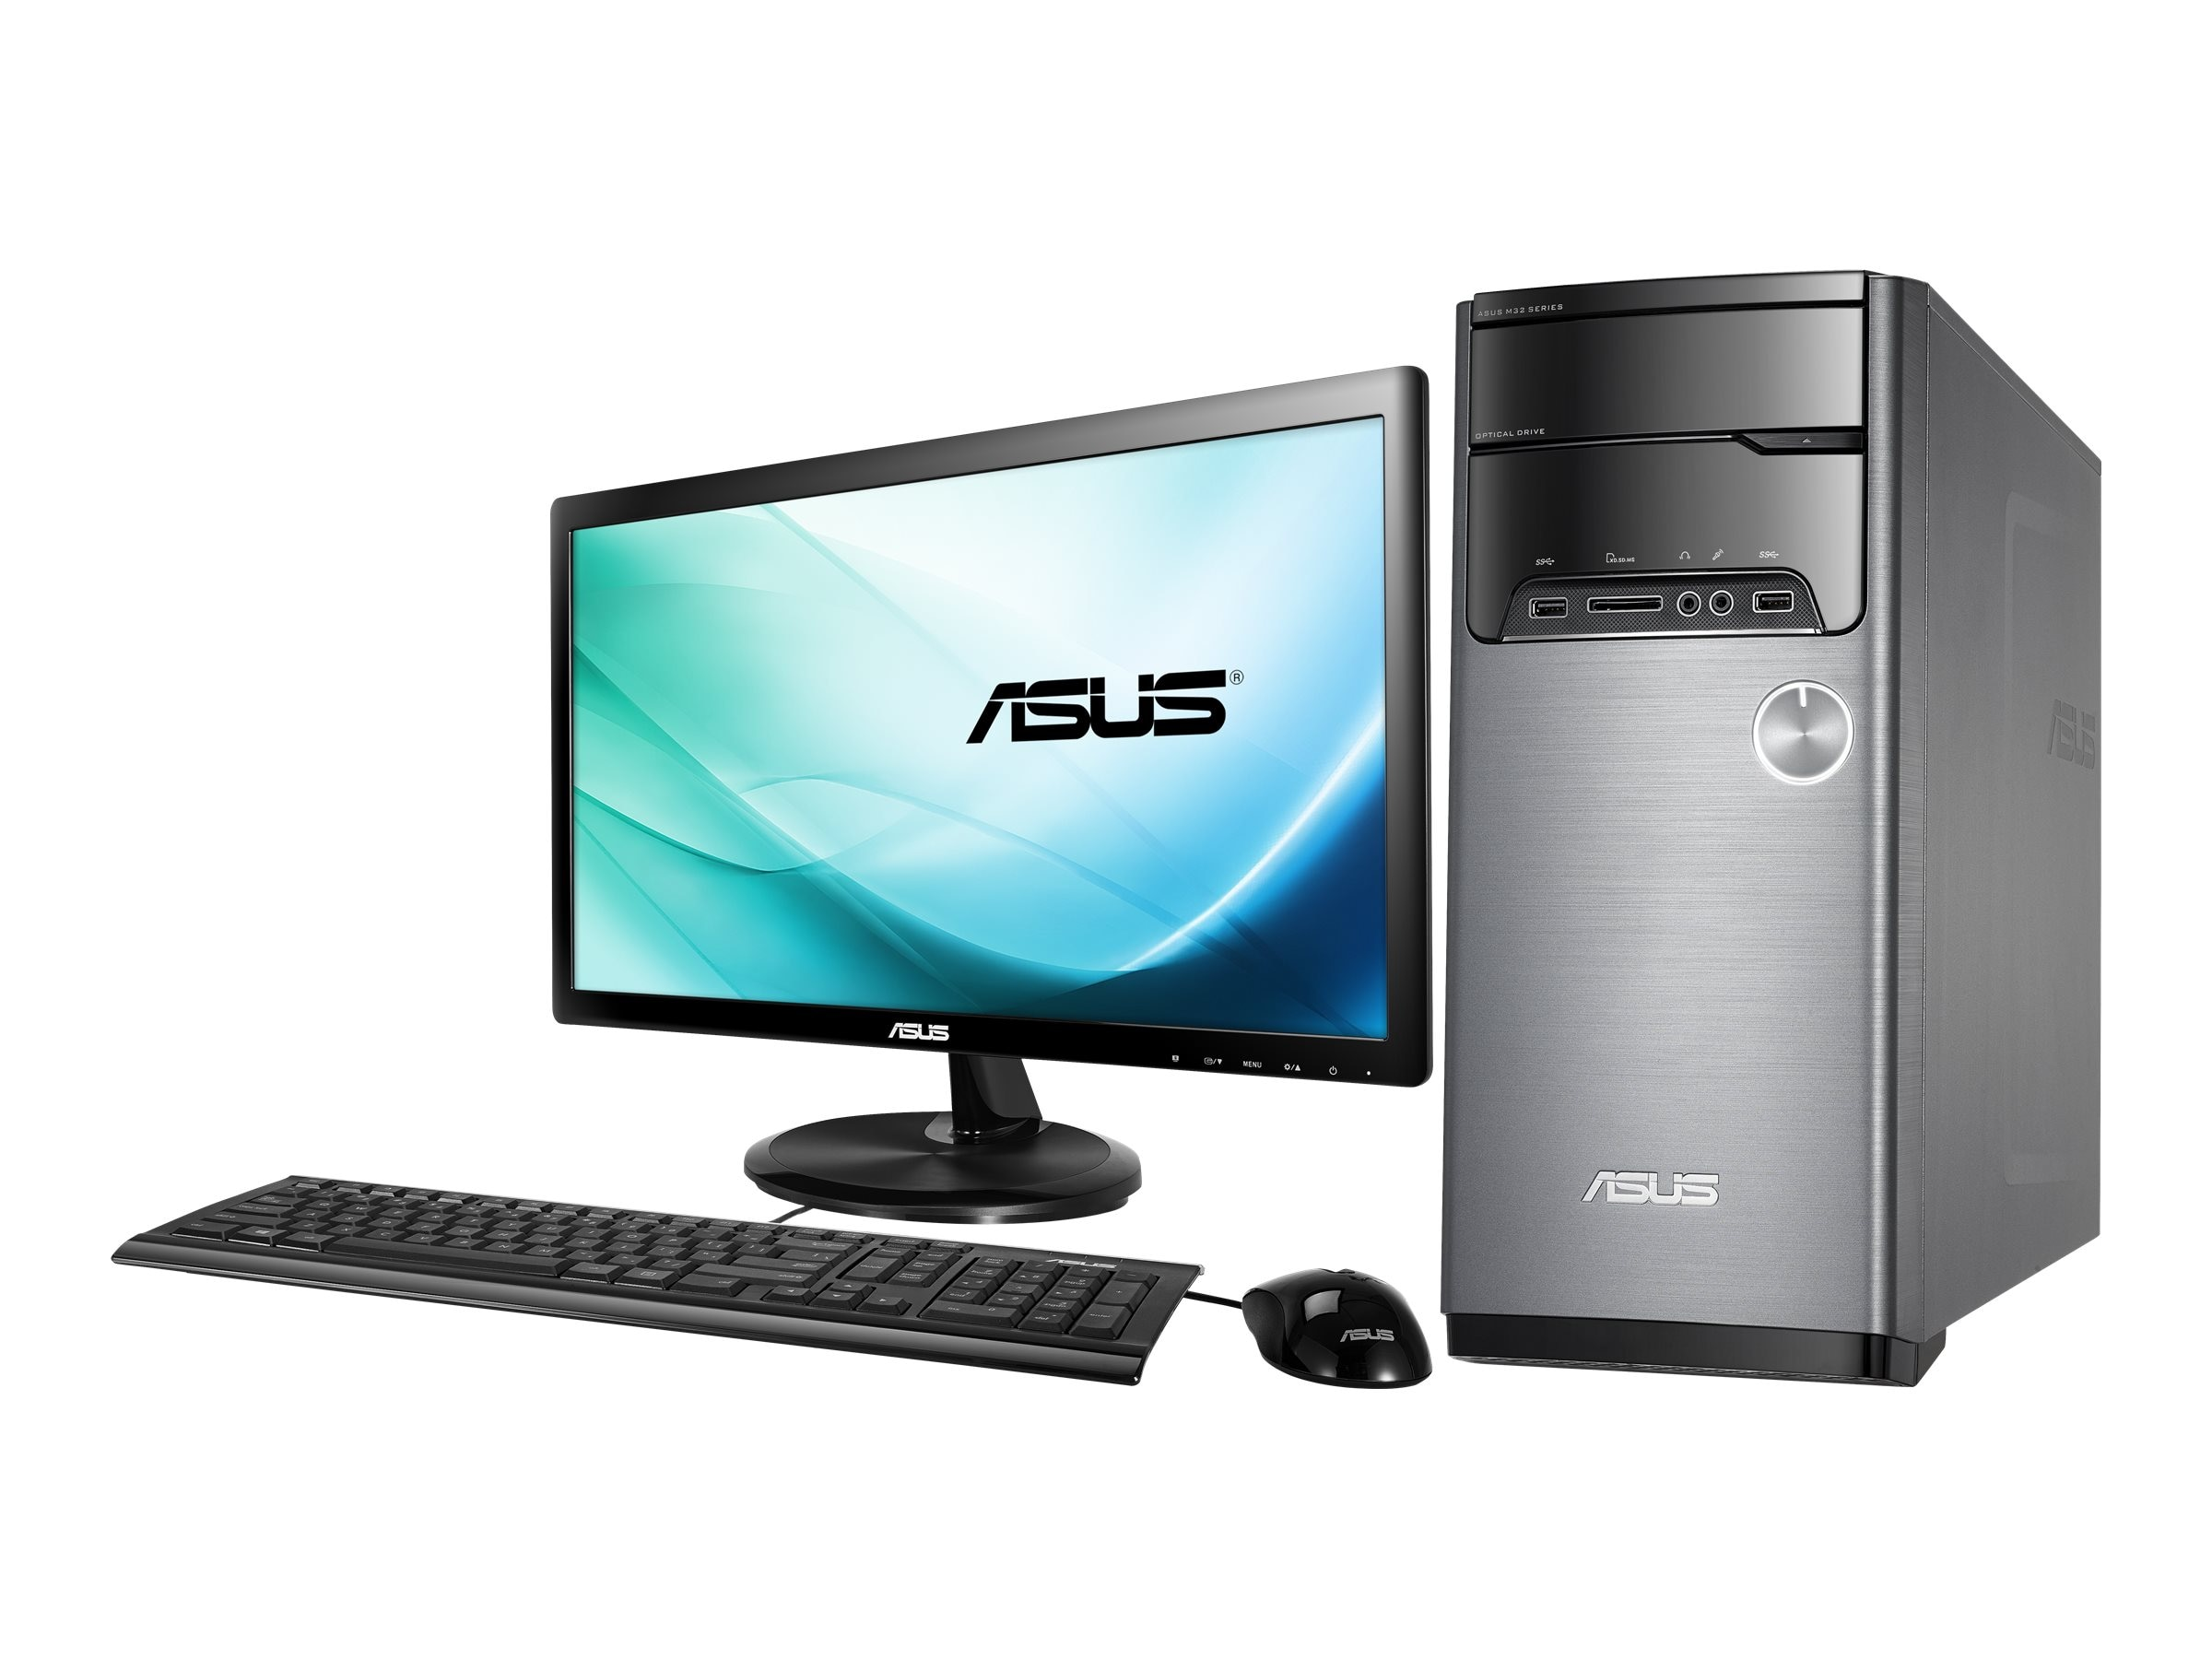 Asus M32AD-US007T Desktop Core i5-4460 3.4GHz 8GB 1TB W1064, M32AD-US007T